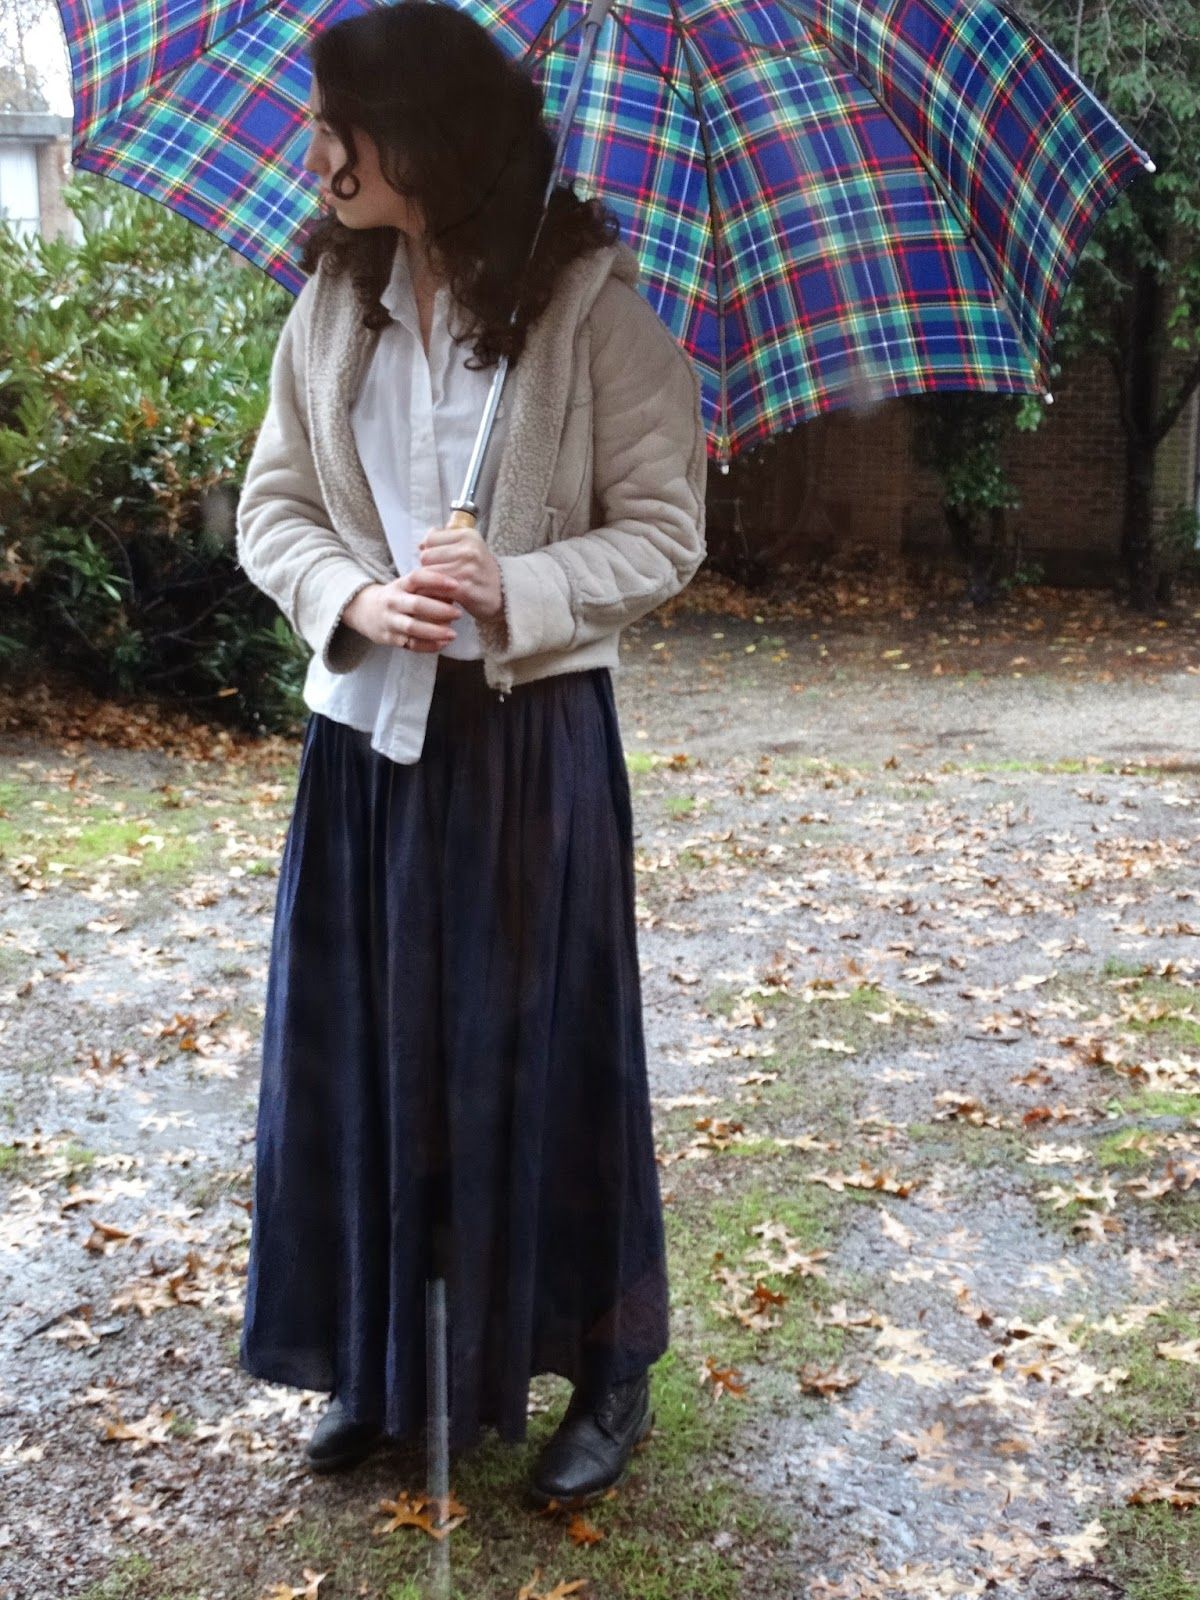 How to wear a maxi dress in fall/winter! Adore the jacket and the umbrella is so chic. xx